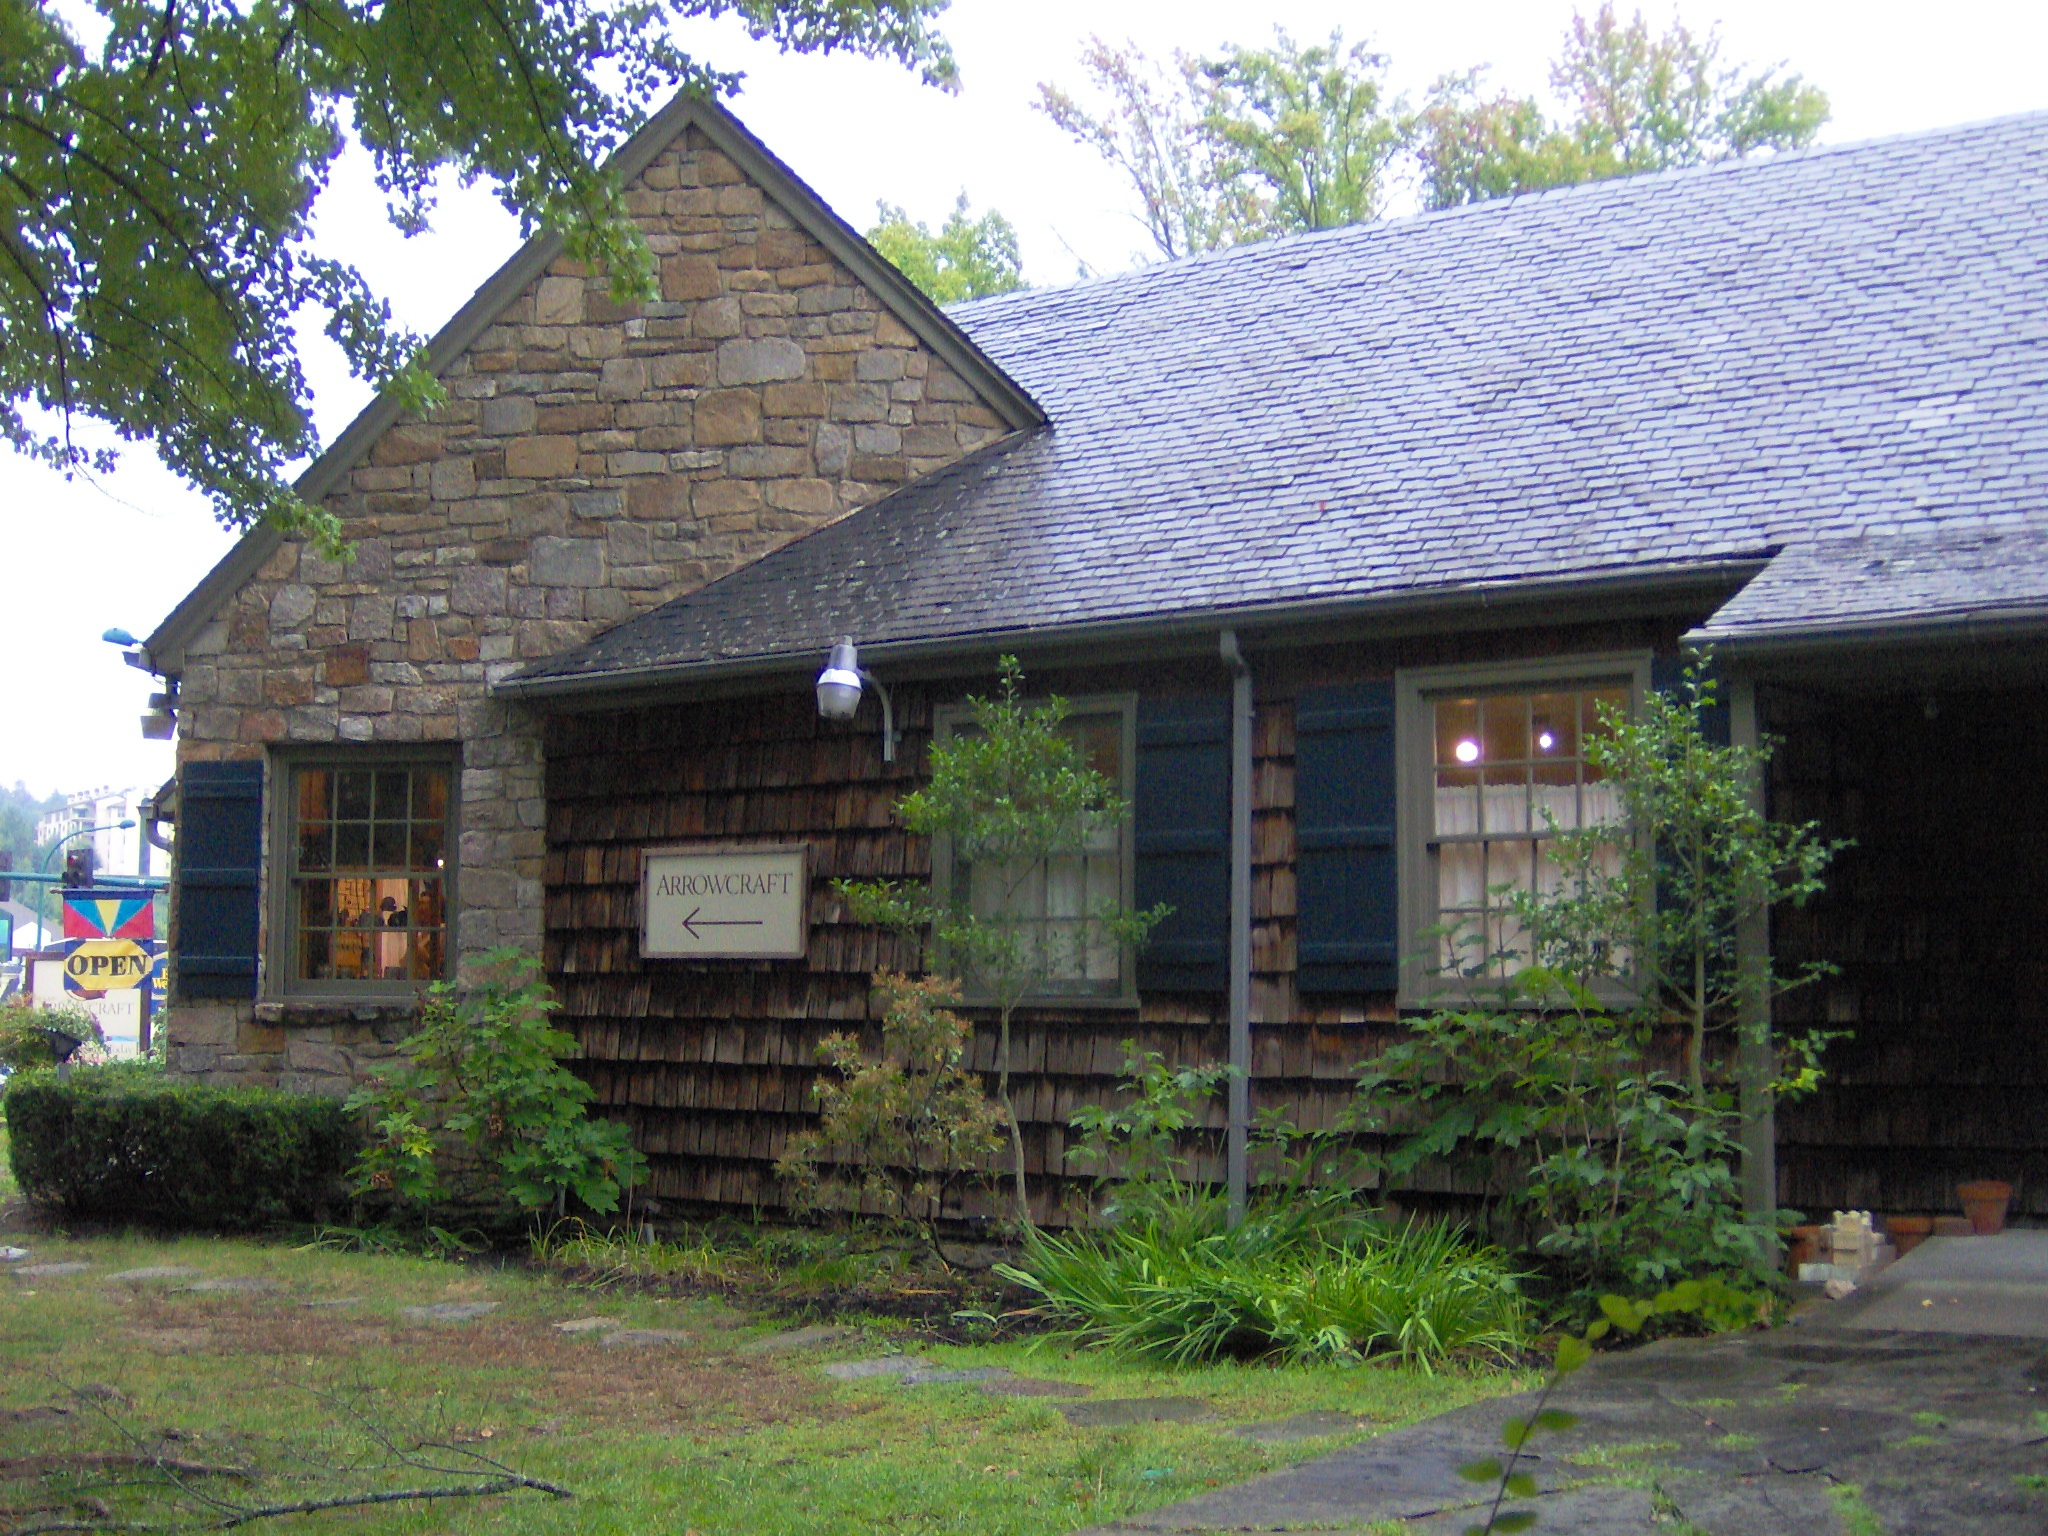 arrowmont school of arts and crafts file arrowmont arrowcraft shop tn1 jpg wikimedia commons 7379